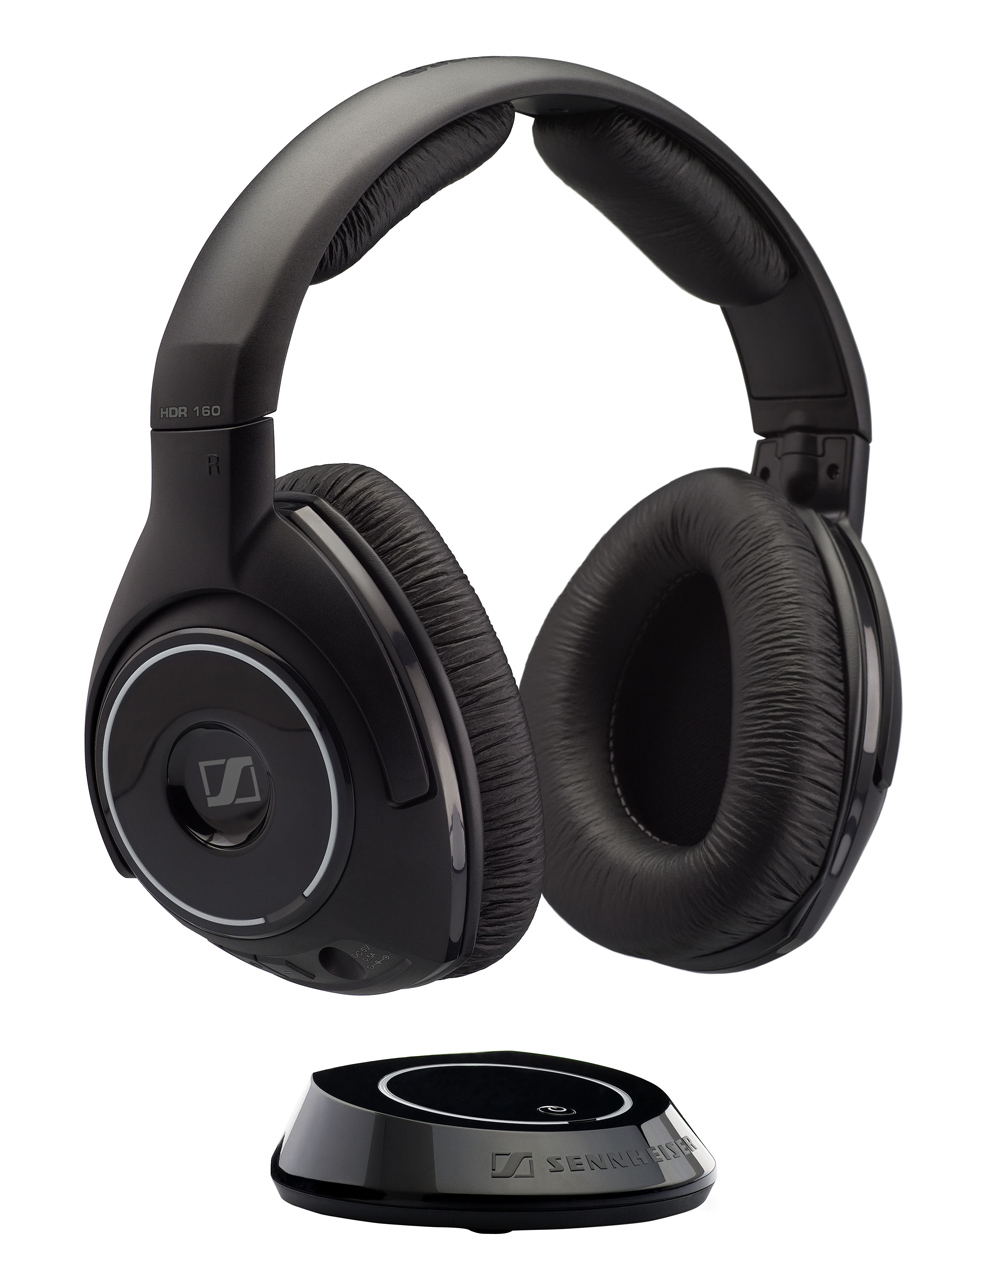 Sennheiser Rs 160 Wireless Audio Headphones Digital Stereo Bass Attachments 121372684979and80schematicjpg 185 Mb Quick Guides